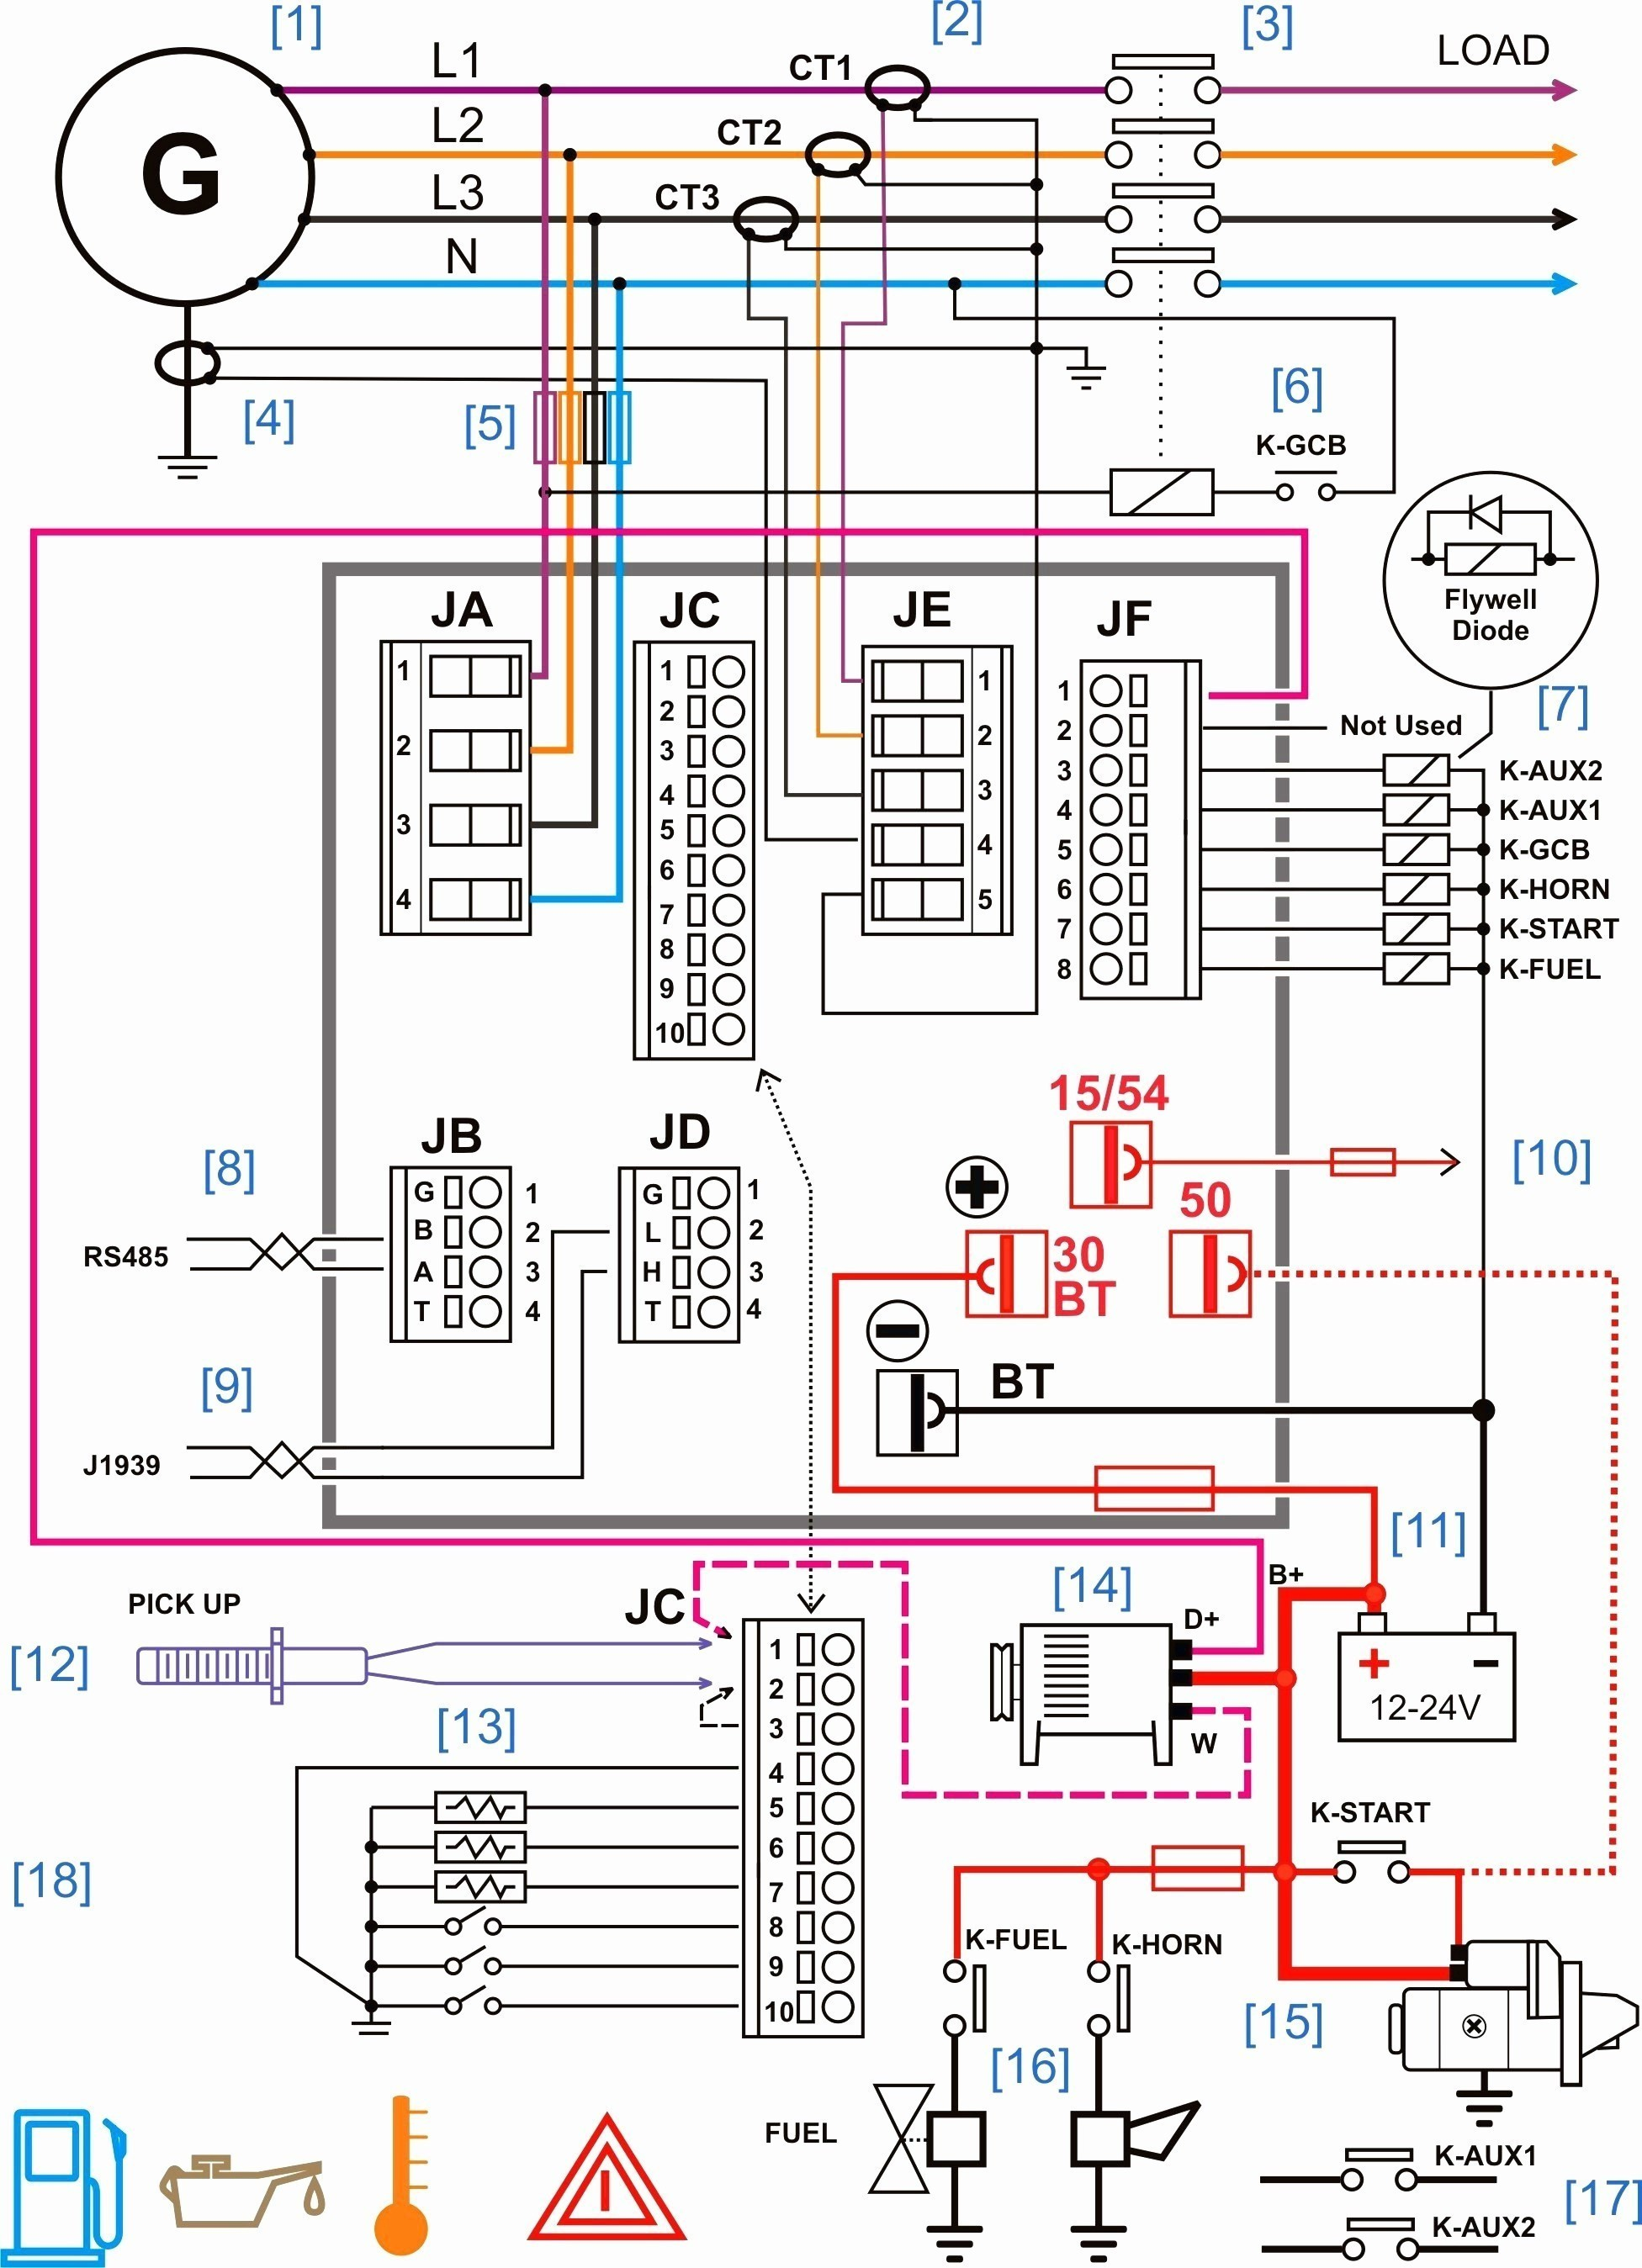 Wiring Diagram for Pioneer Car Stereo Save Audi A4 Cd Player Wiring Diagram Of Wiring Diagram for Pioneer Car Stereo Wiring Diagram Booster Amplifier Inspirationa Pioneer Car Stereo